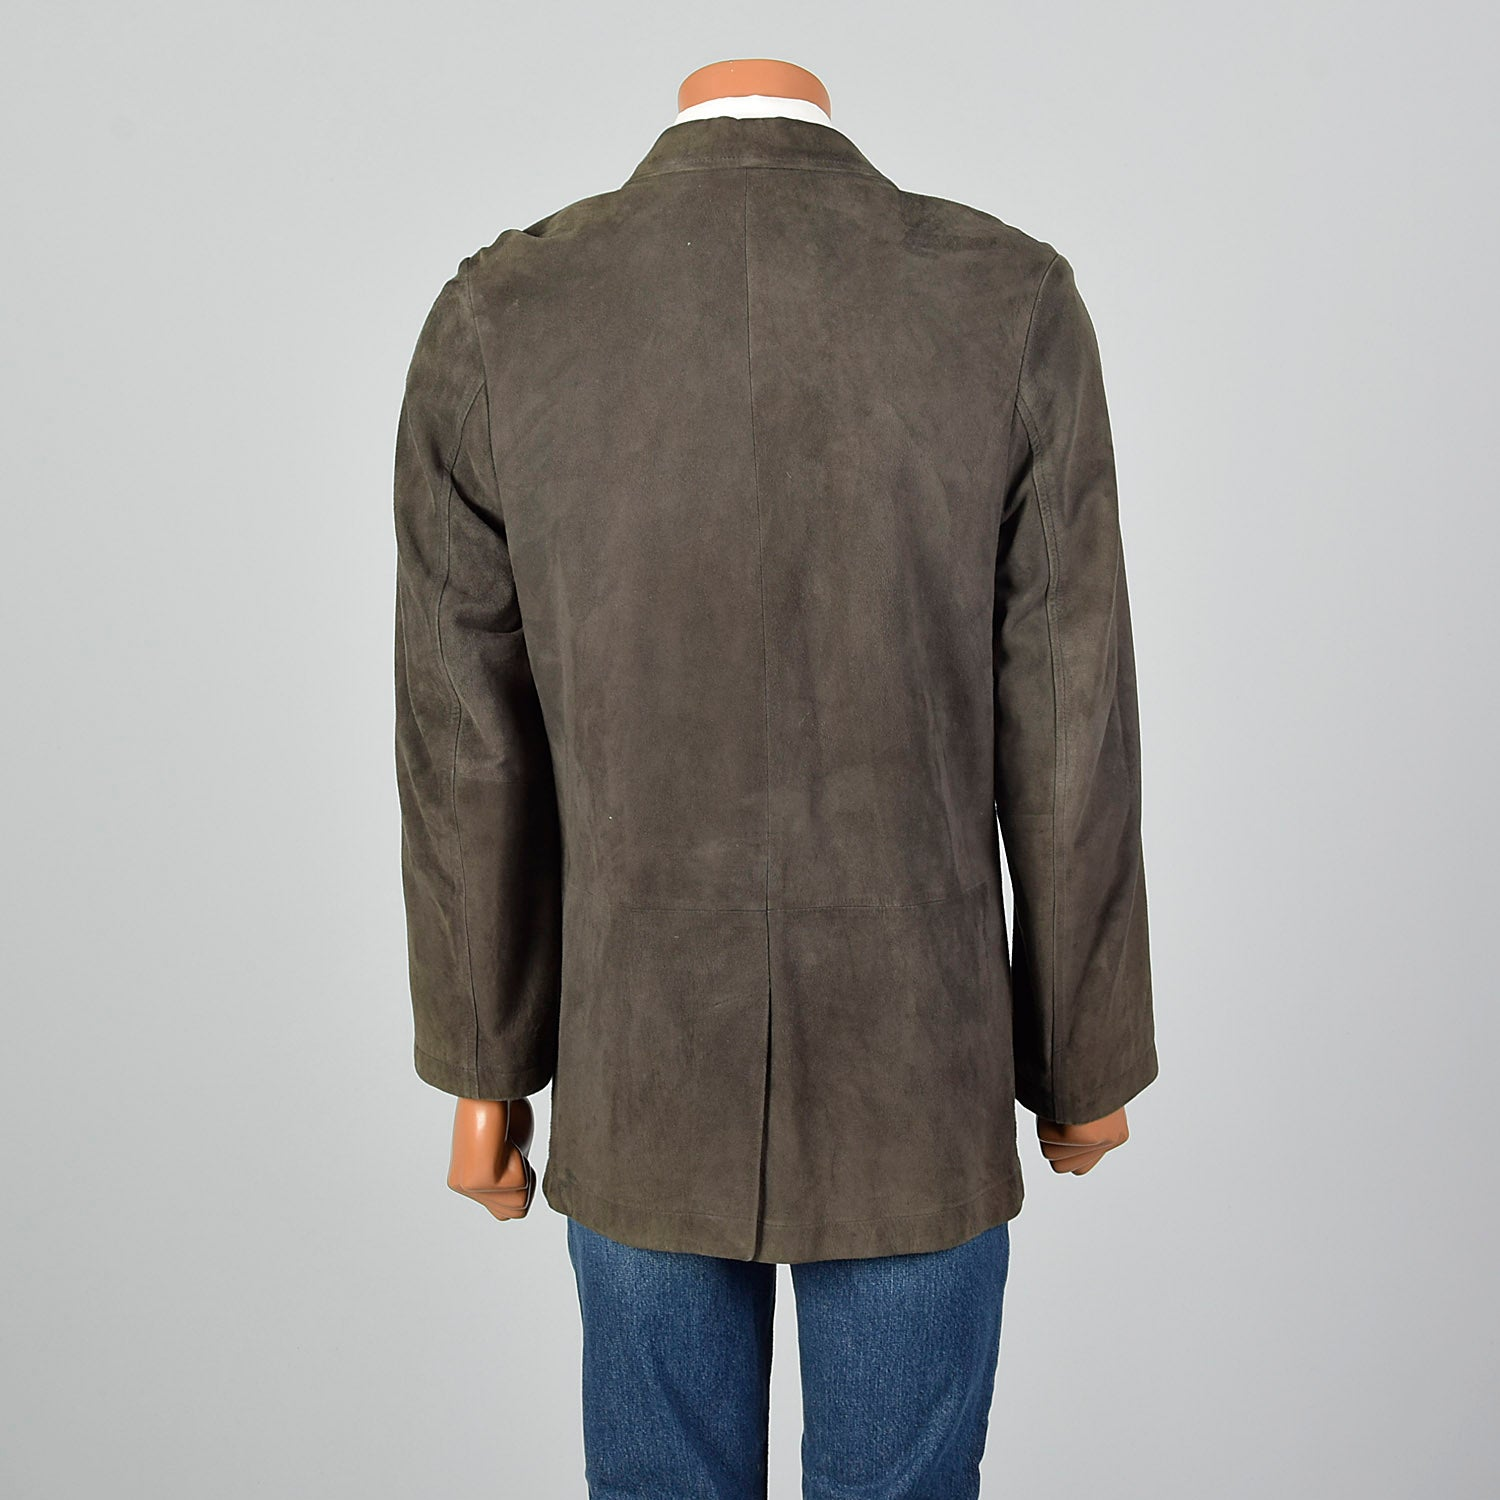 1980s Green Suede Jacket